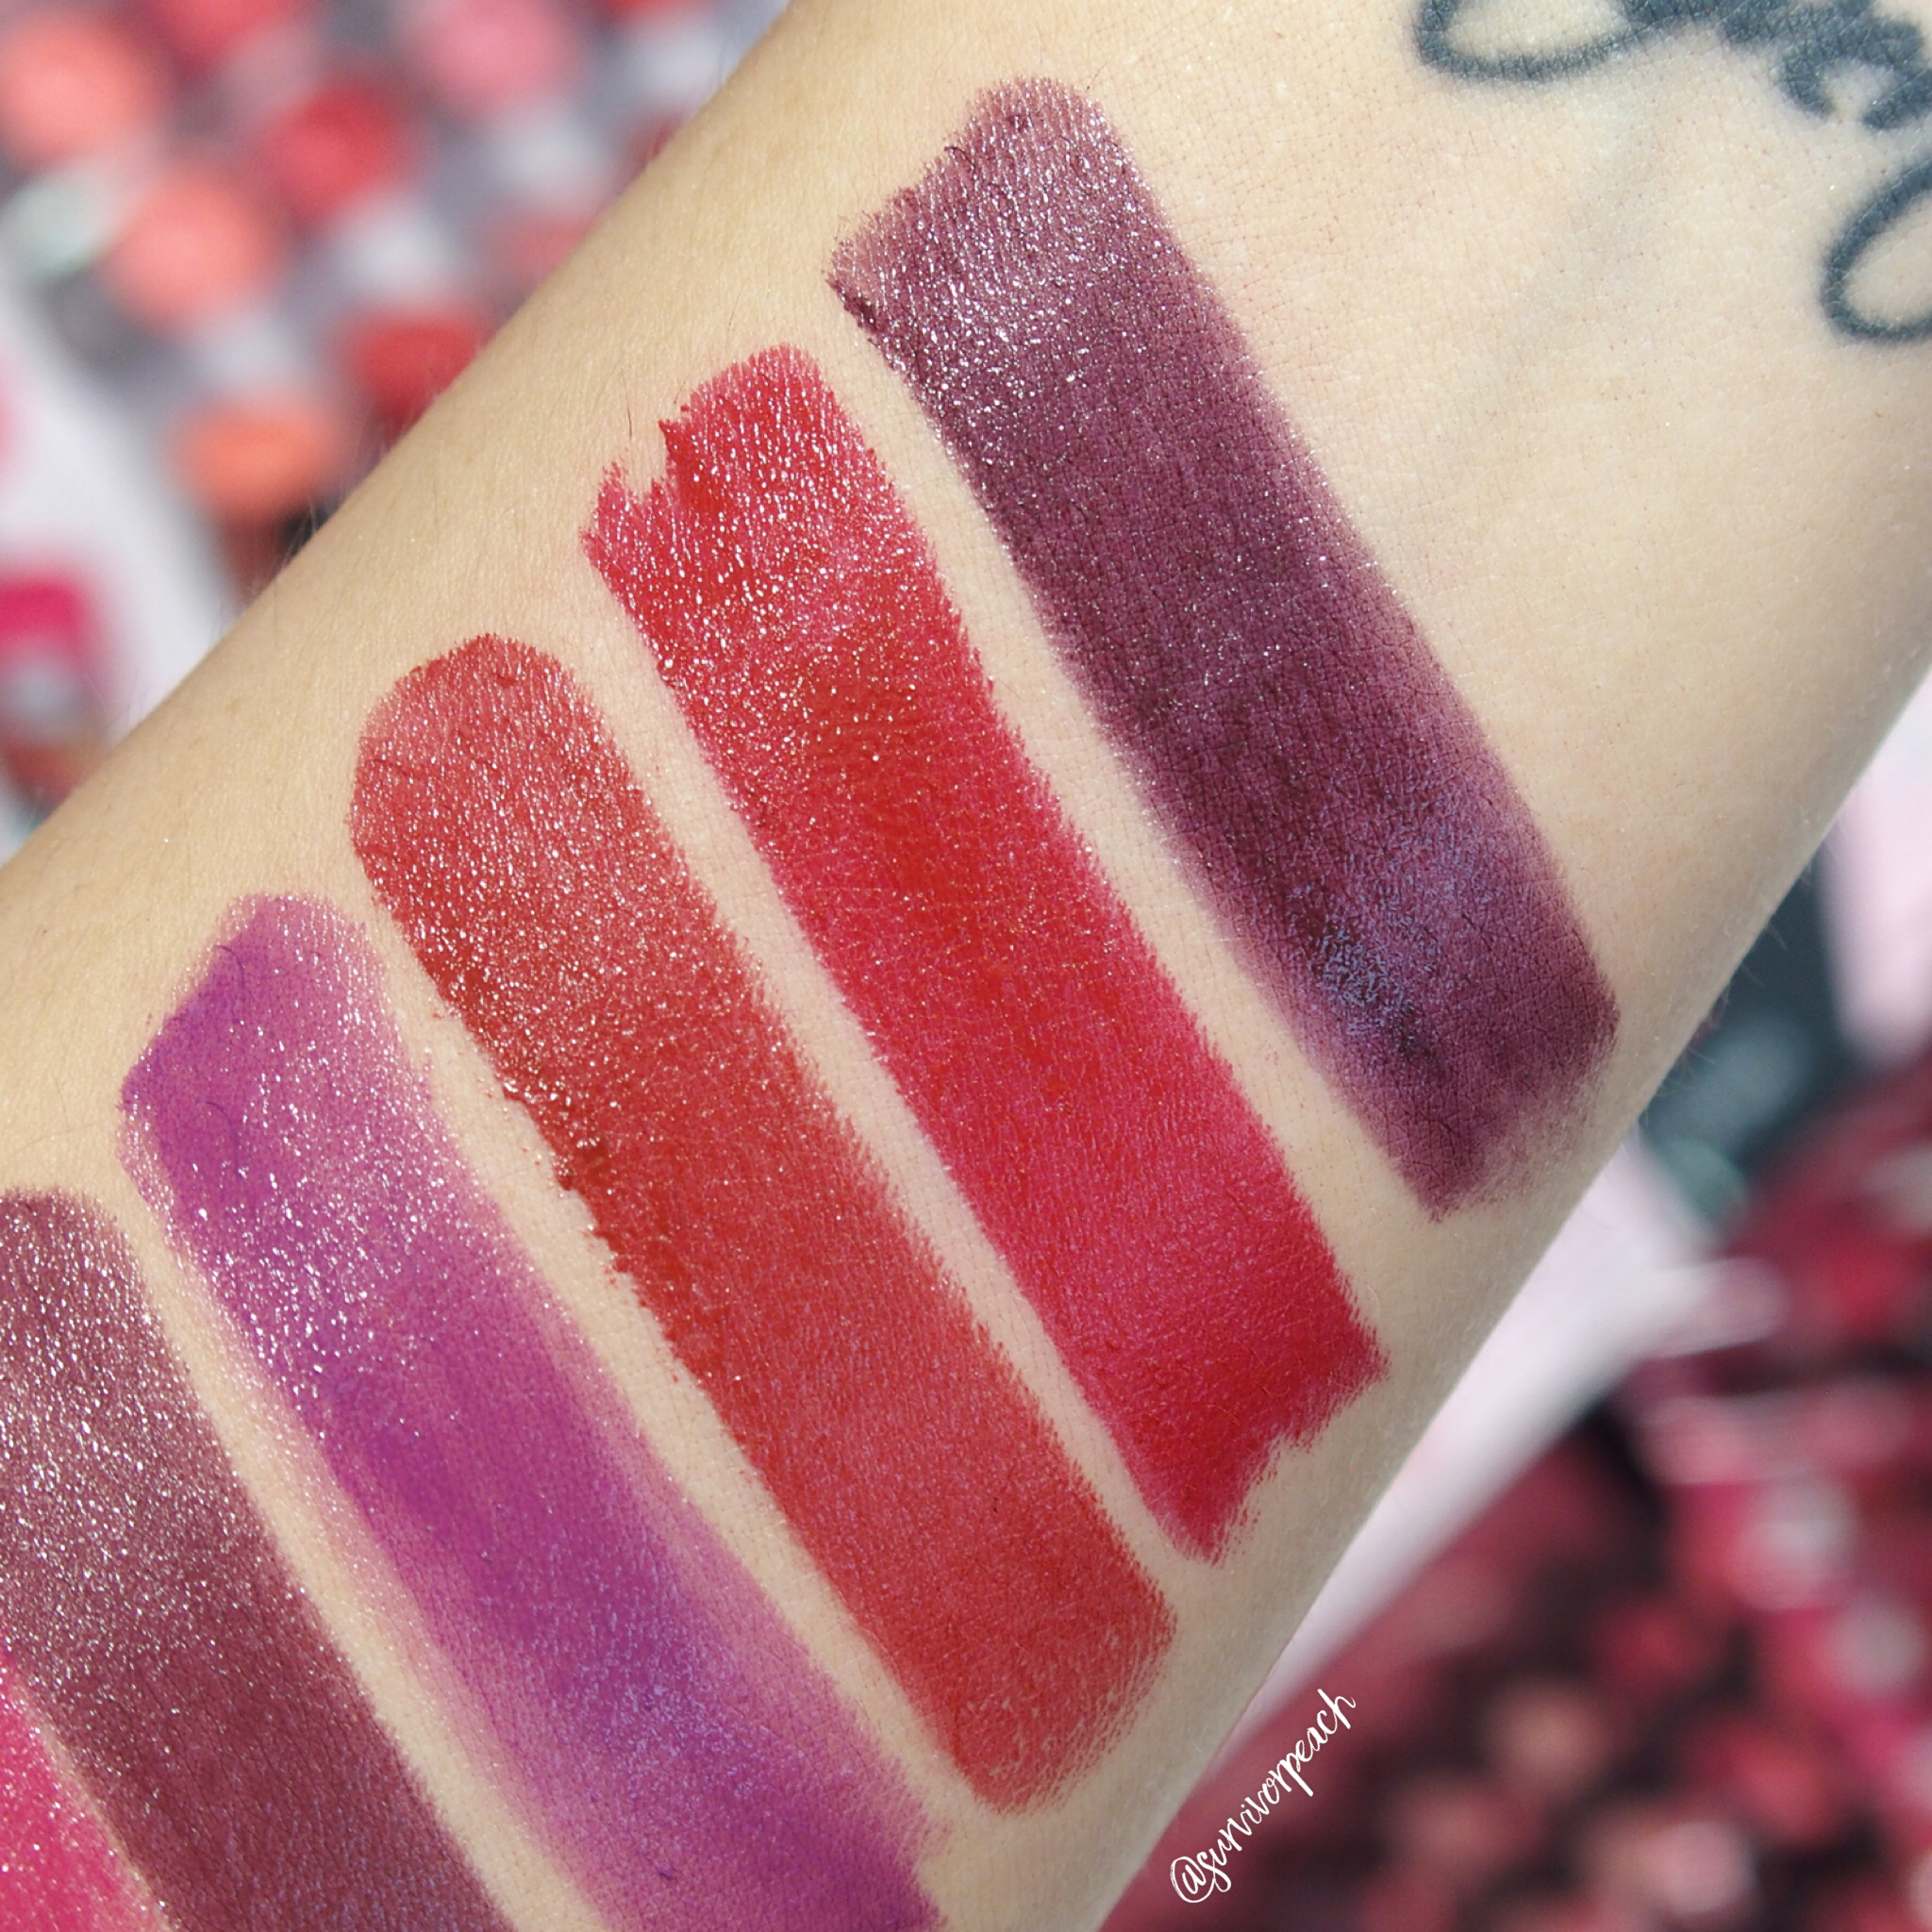 Sephora Collection Lipstick Rouge Lacquer Lipstick swatches- L01 Power Suit, L02 Wicked Smart, L04 Empowered, L05 What's My Secret?